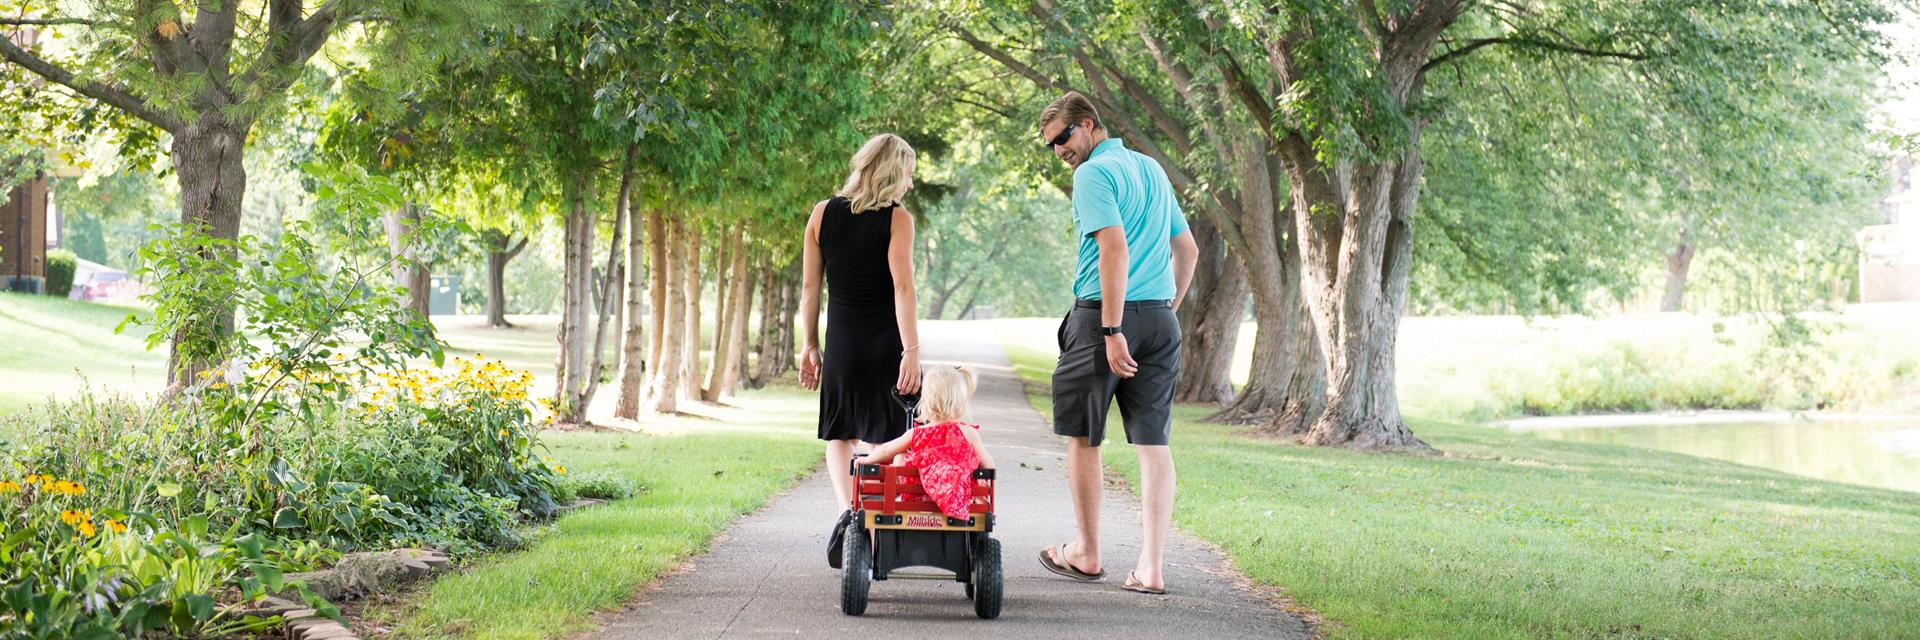 Two parents walking down a tree lined path, pulling their child in a wagon.